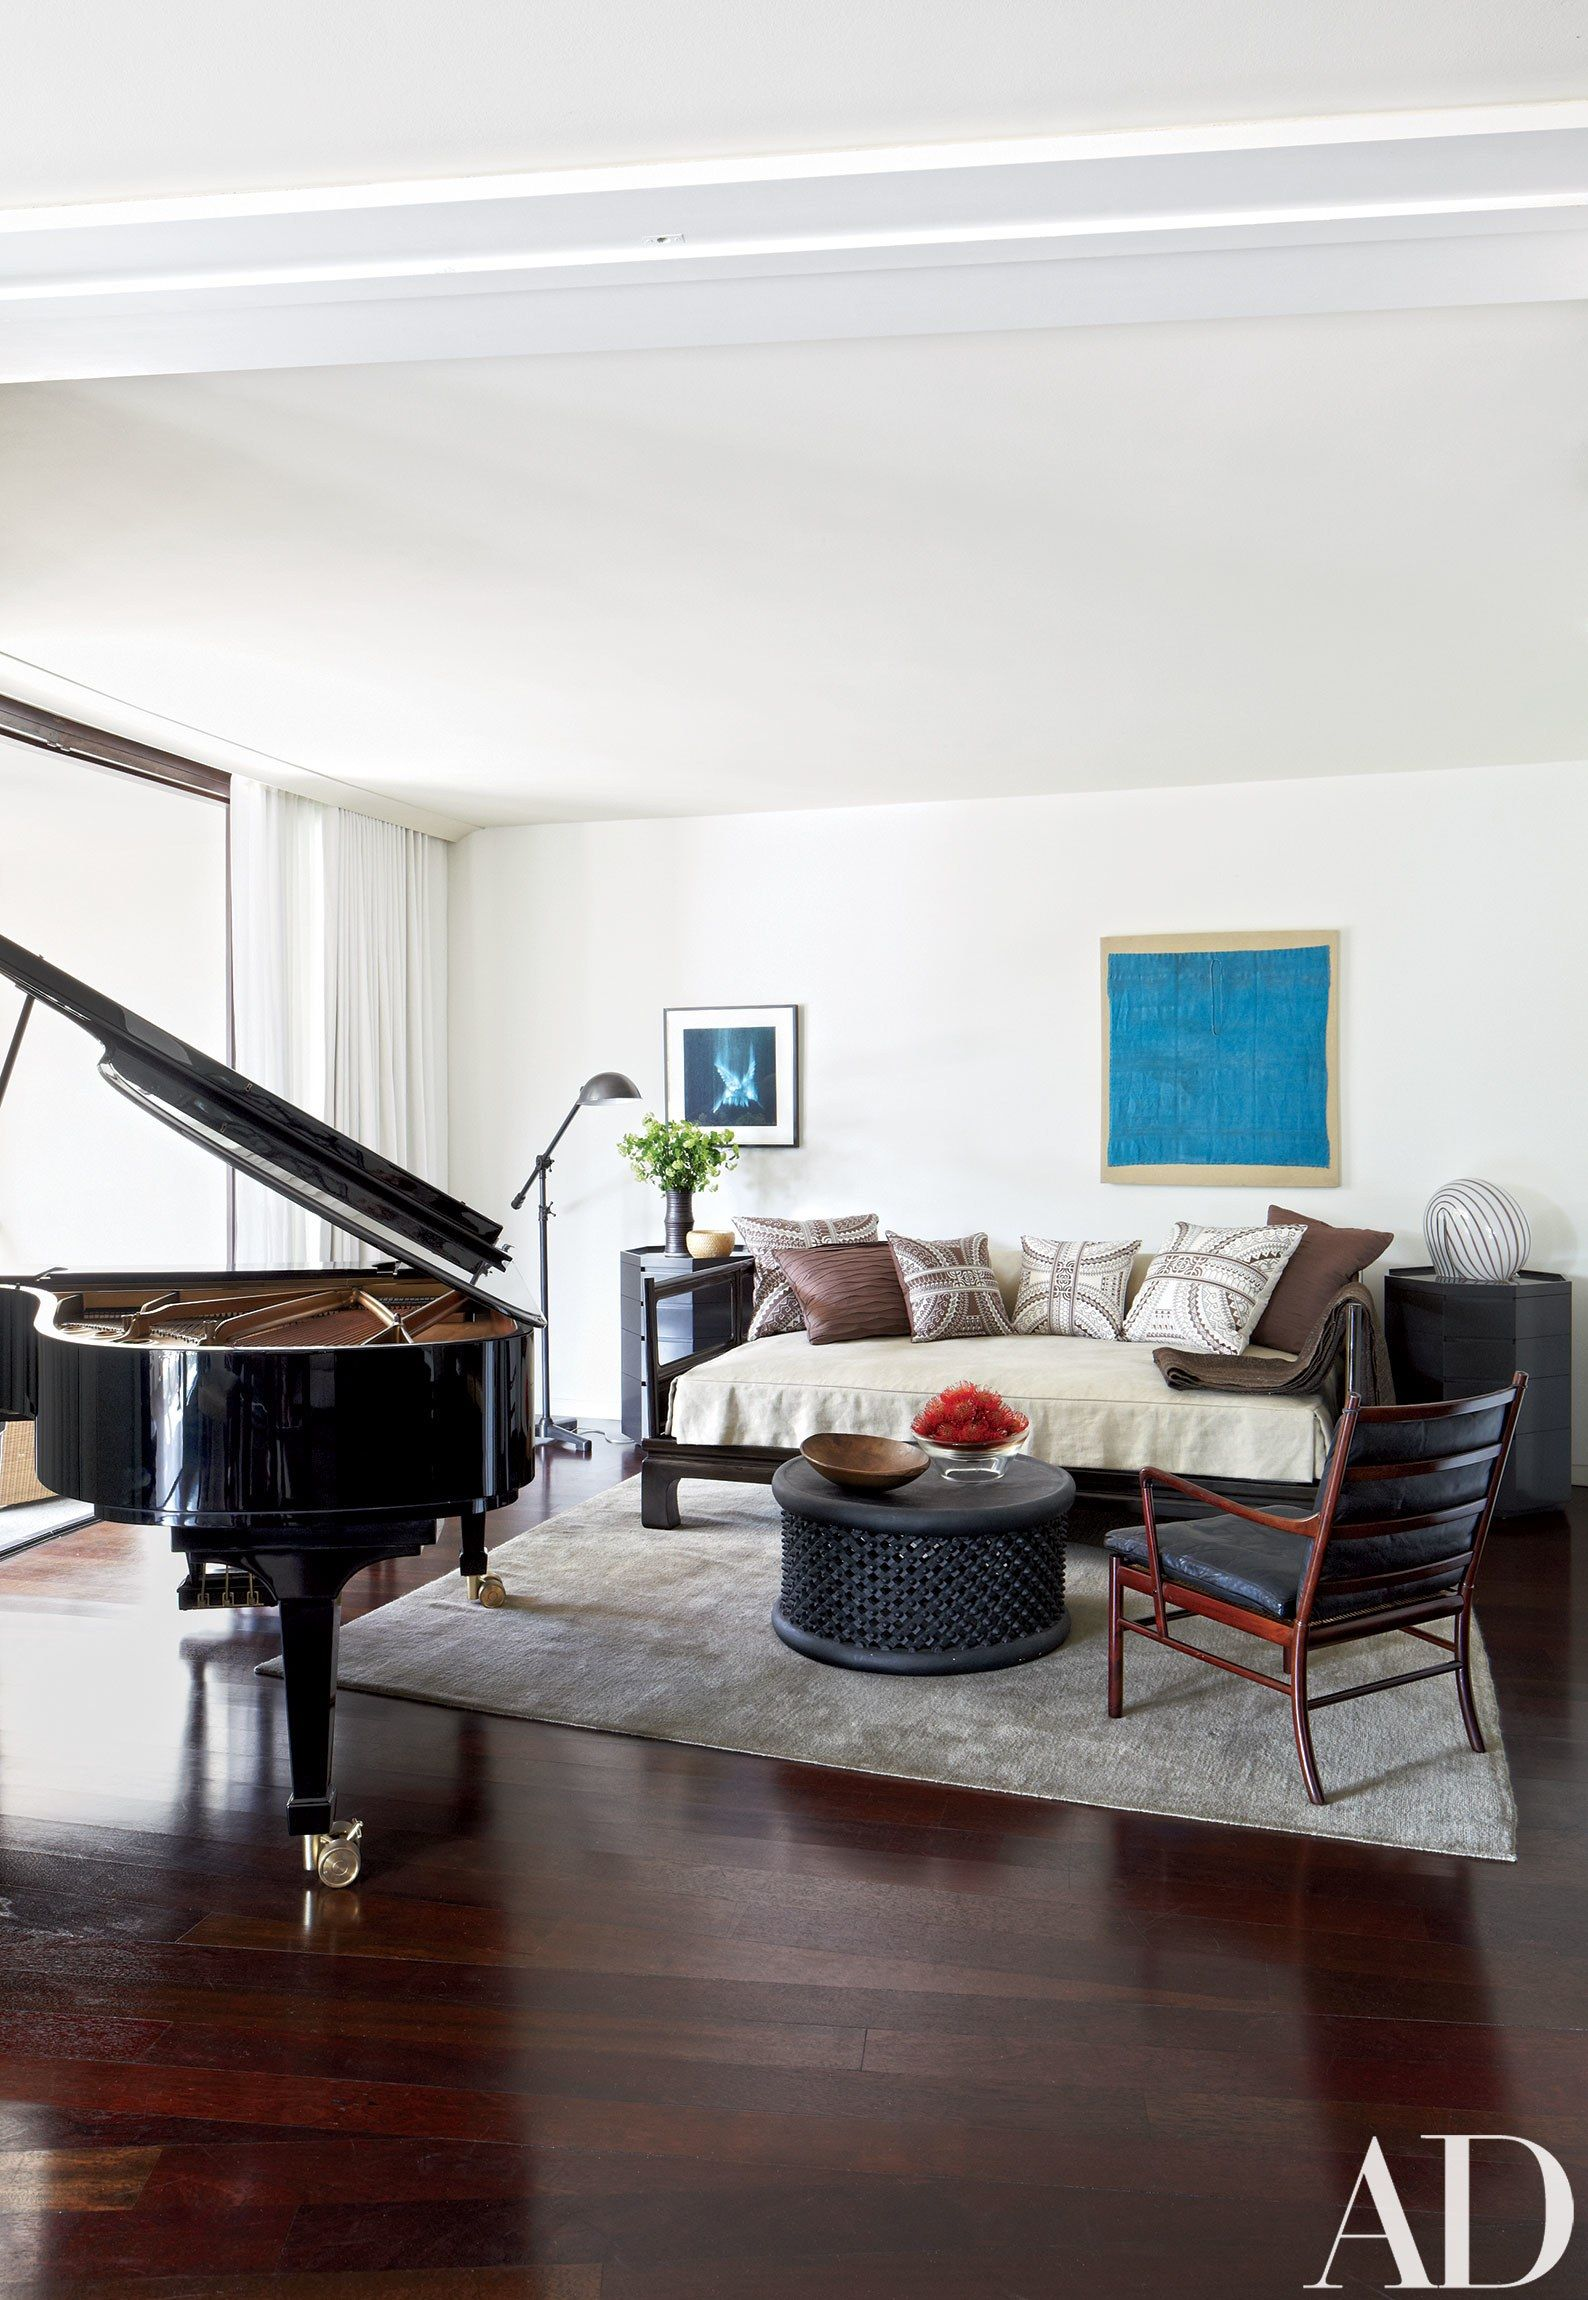 See How Calvin Tsao Crafted a Chic and Relaxed Palm Beach Apartment